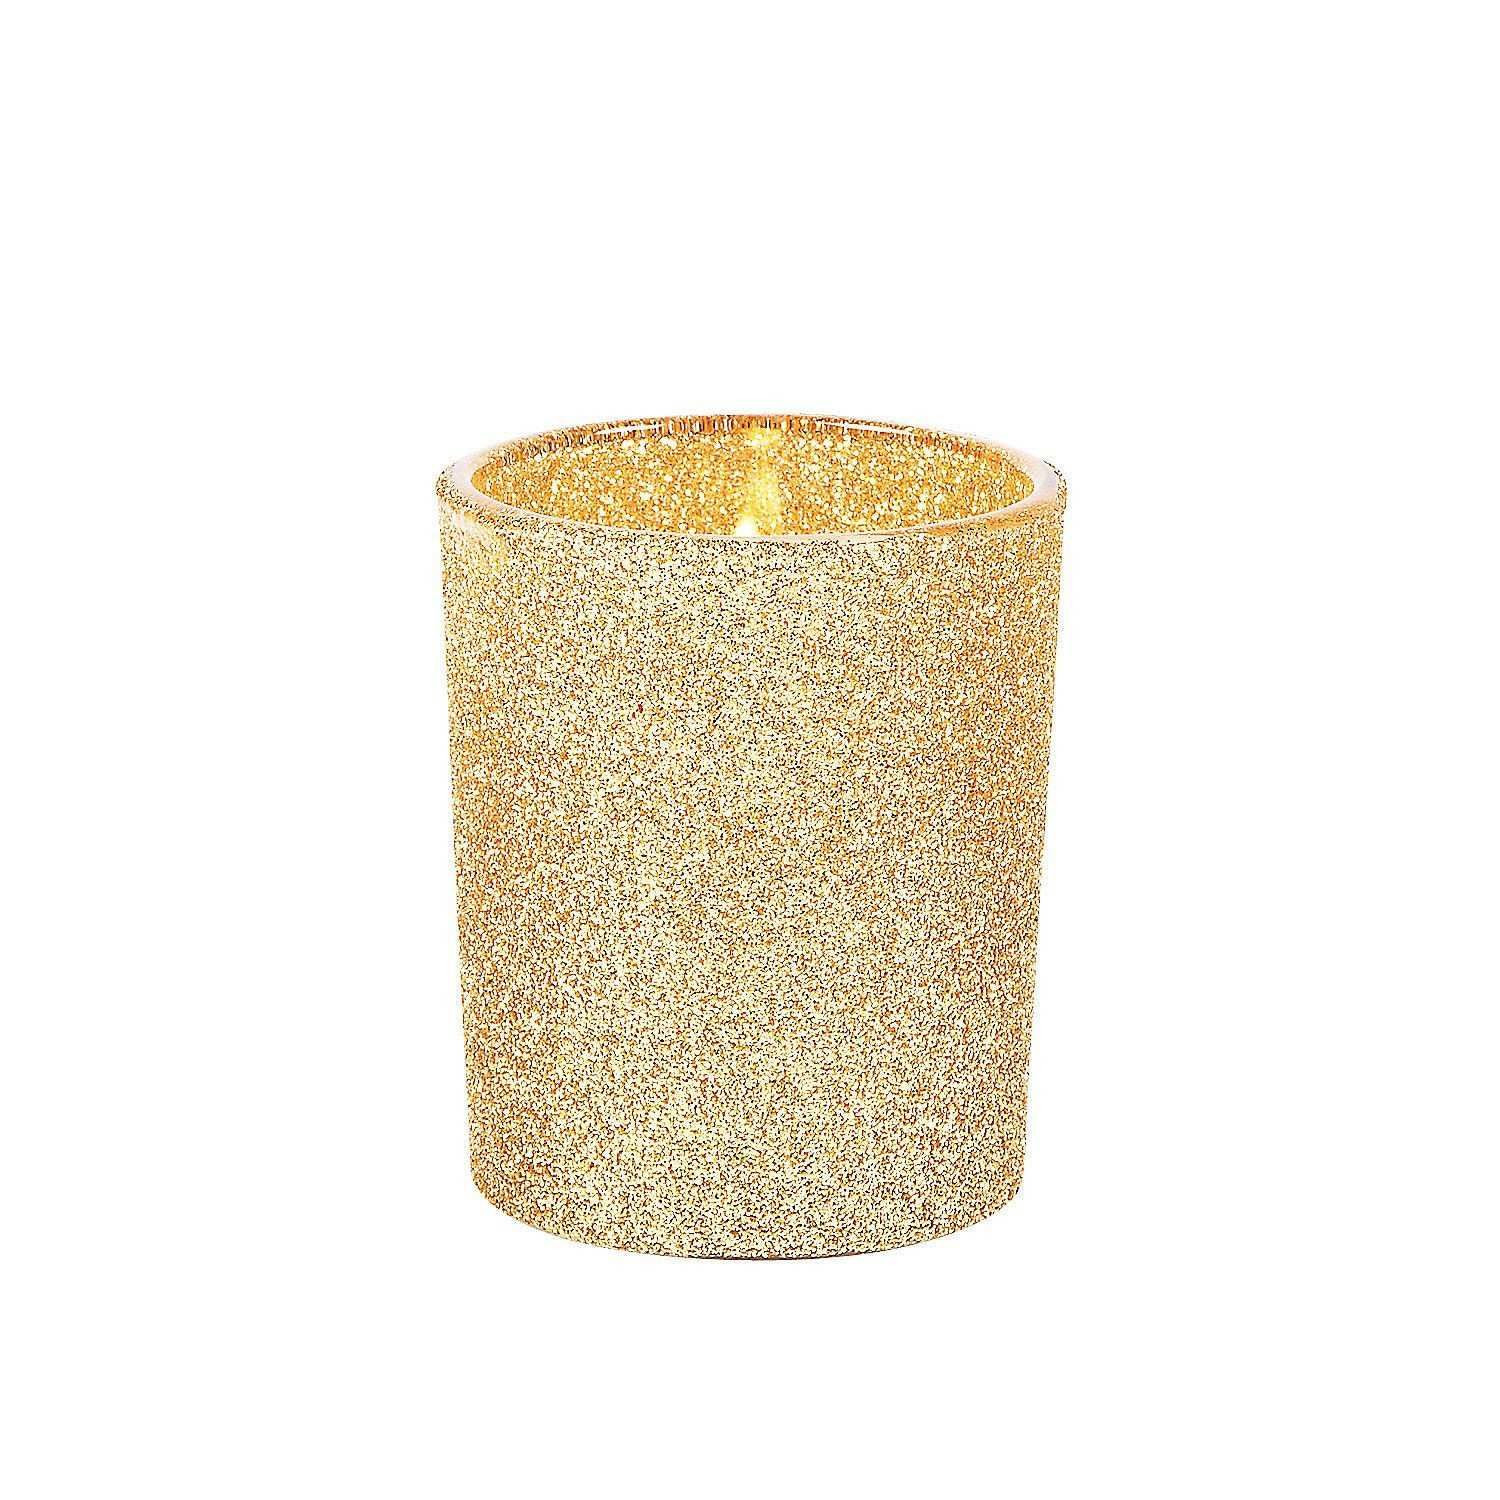 silver mercury glass vases wholesale of gold mercury glass vases awesome inspiration gold votive candles intended for gold mercury glass vases awesome inspiration gold votive candles with gold glitter votive holders